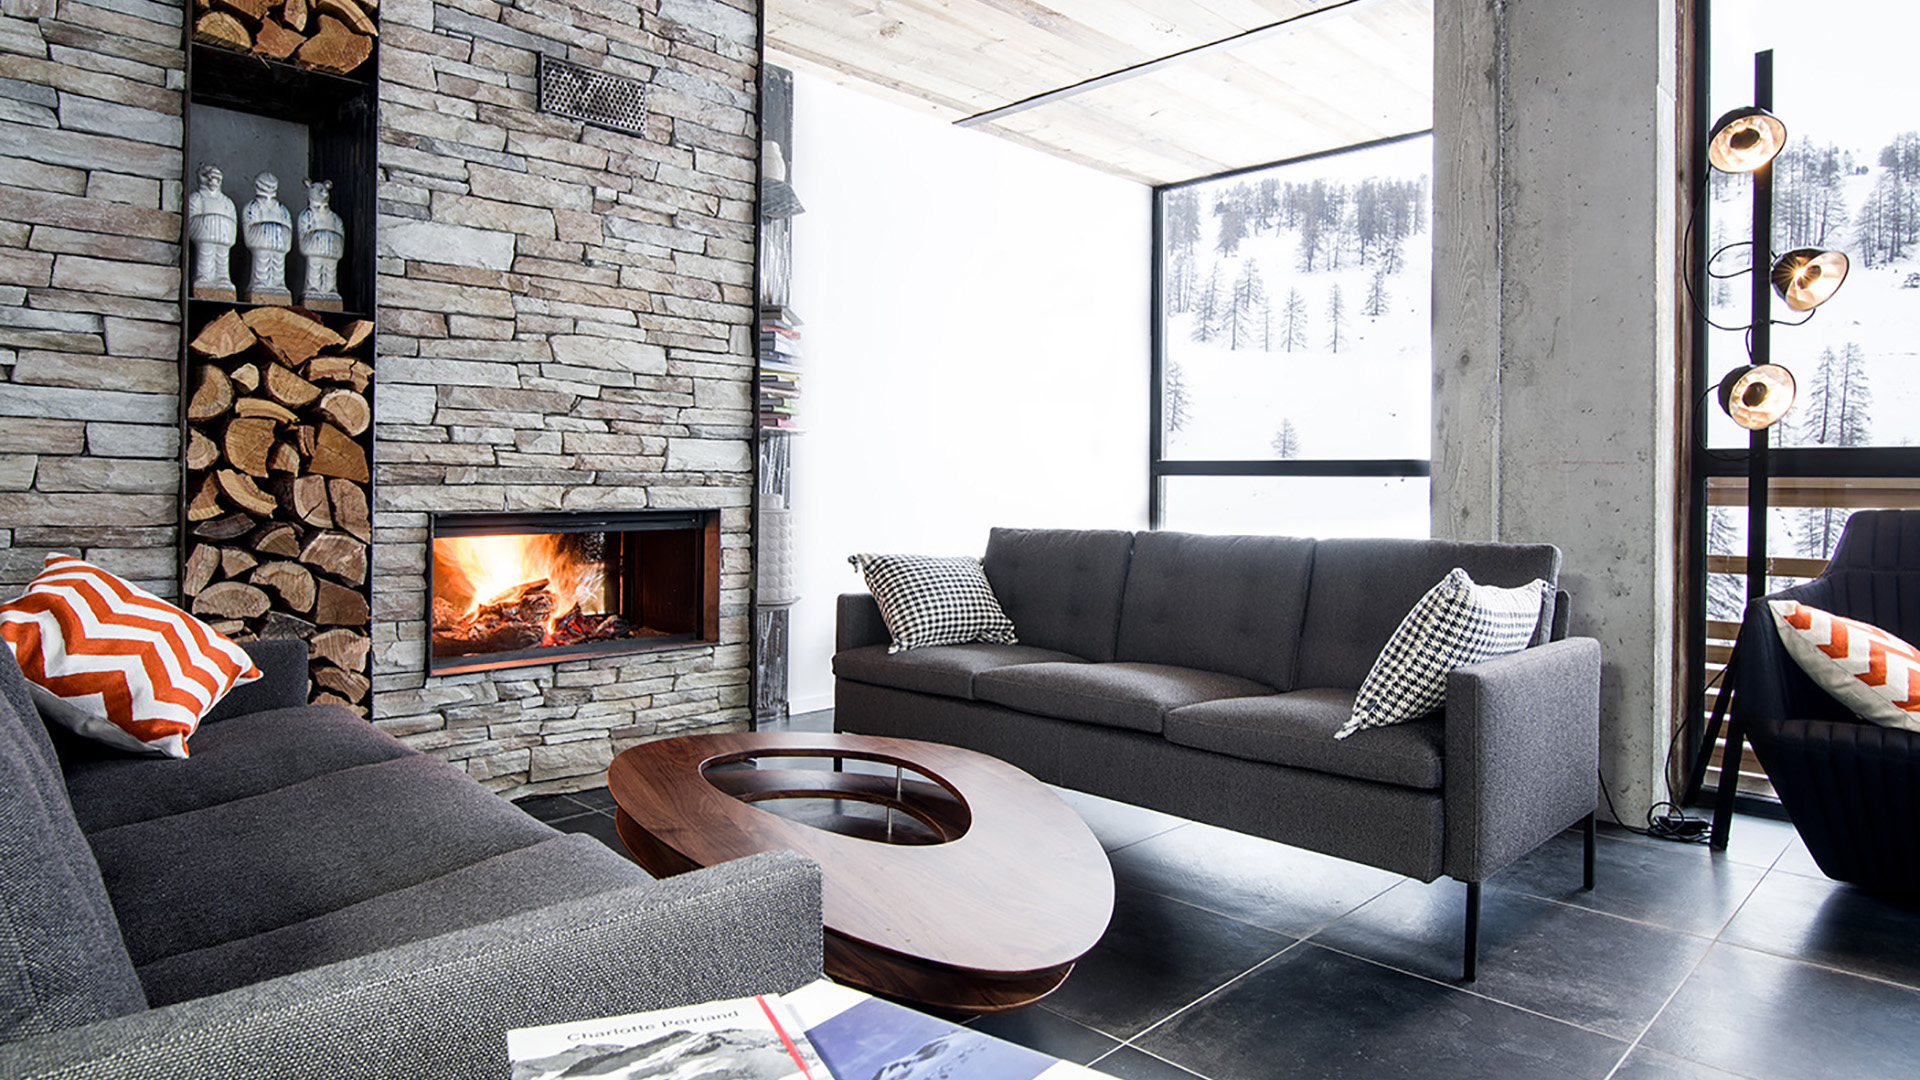 Skiin skiout small luxury design hotel in the French Alps in Vars